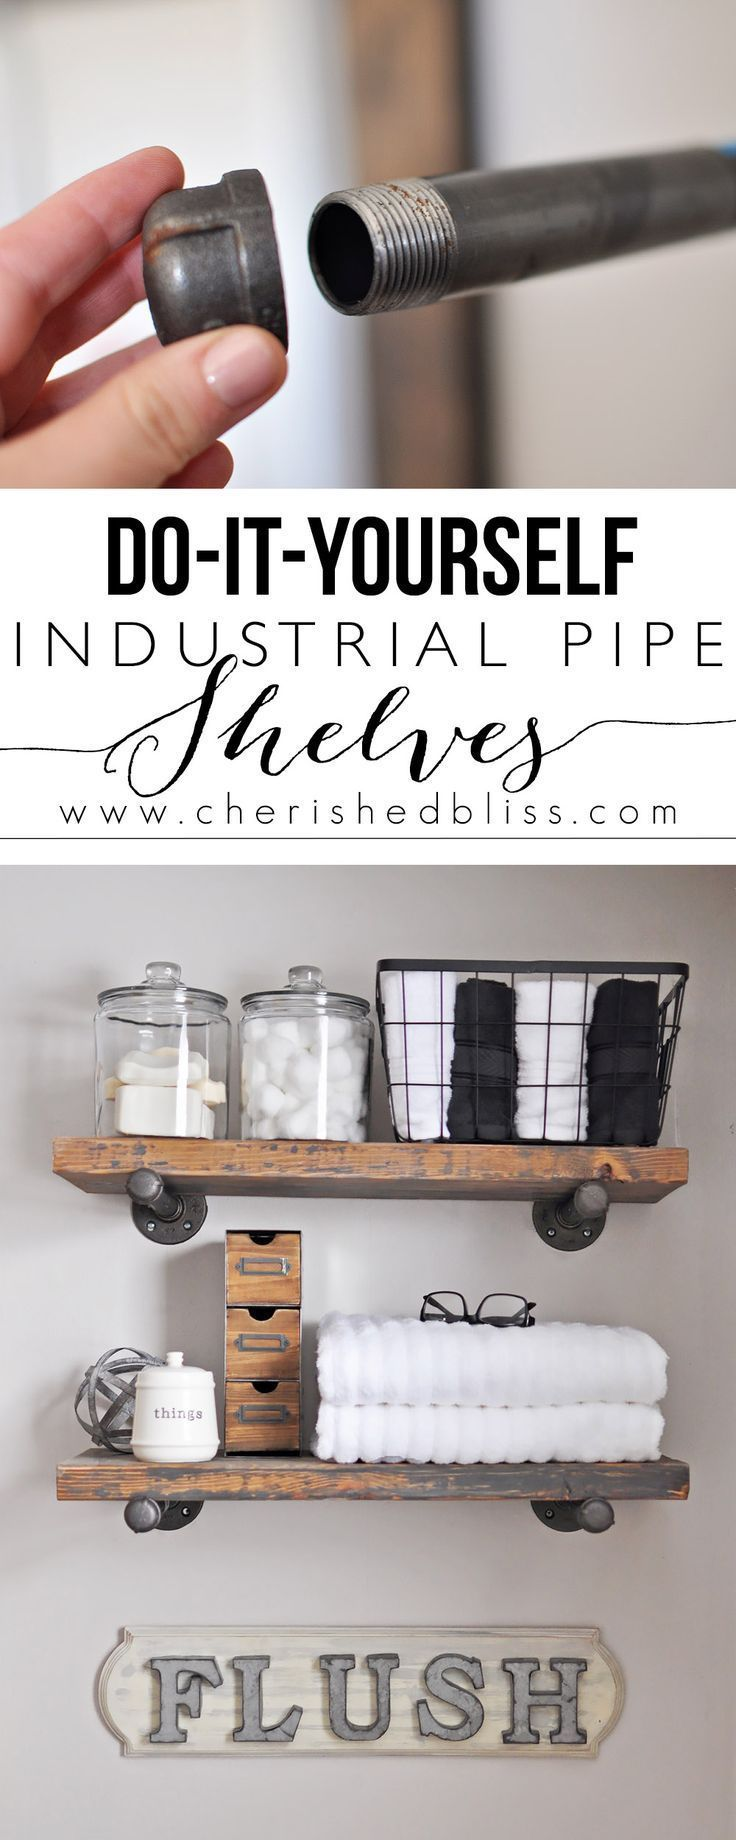 How To Build DIY Industrial Pipe Shelves